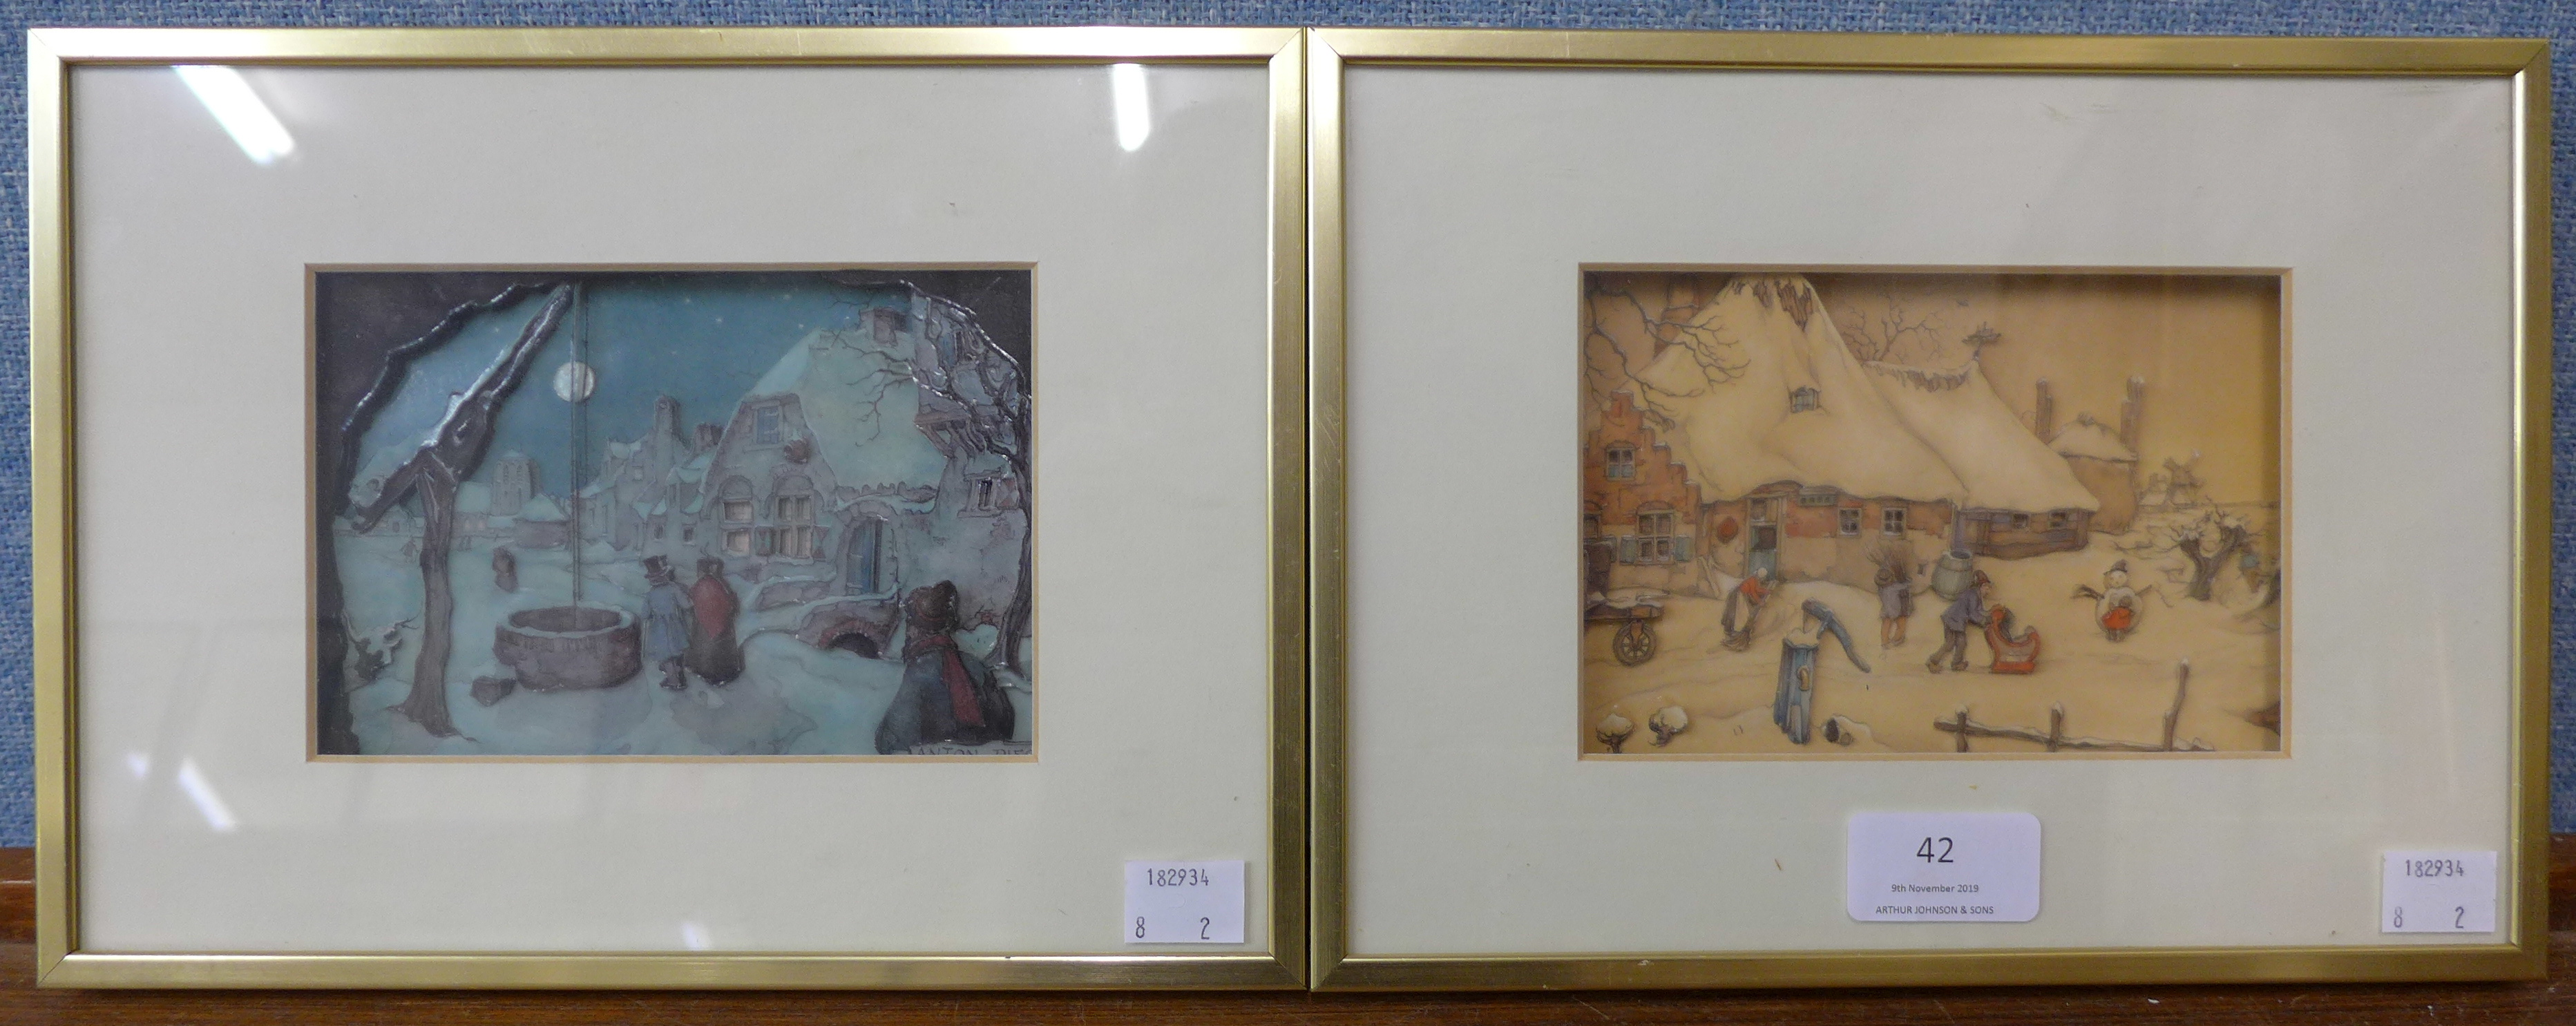 Lot 42 - Anton Pieck (Dutch 1895 - 1987), pair of small relief pictures,